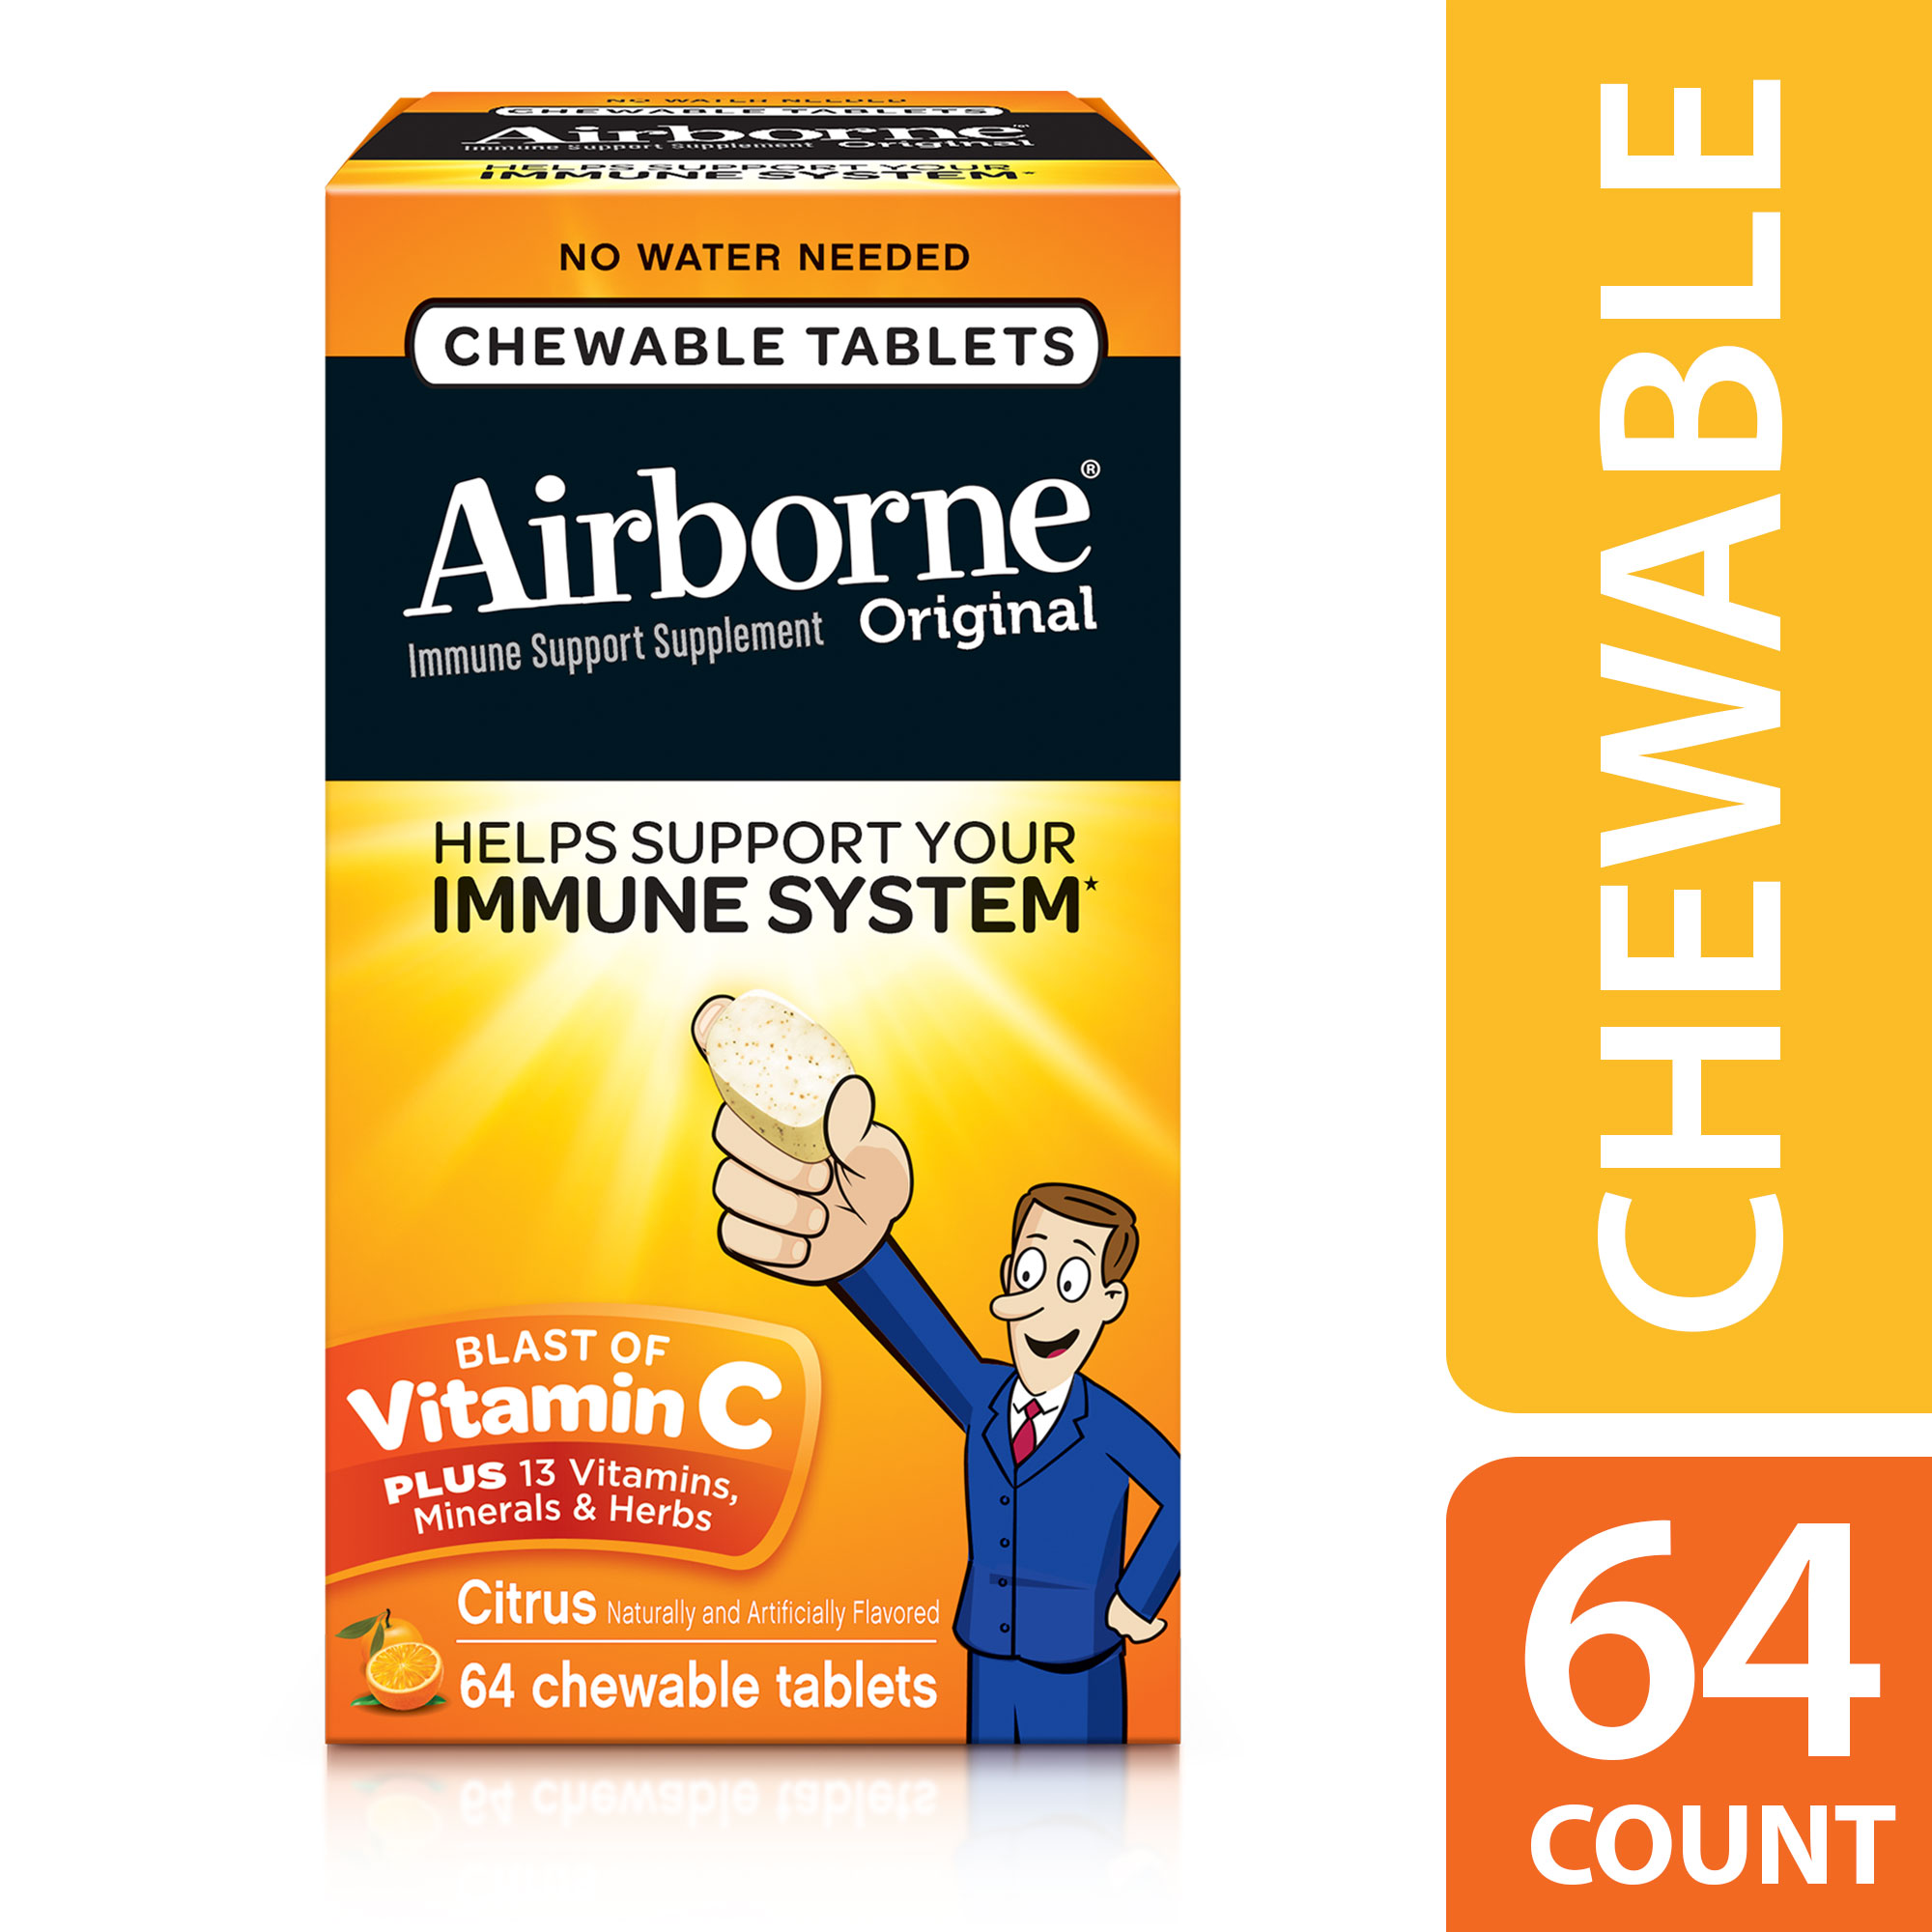 Airborne Citrus Chewable Tablets, 64 count - 1000mg of Vitamin C - Immune Support Supplement